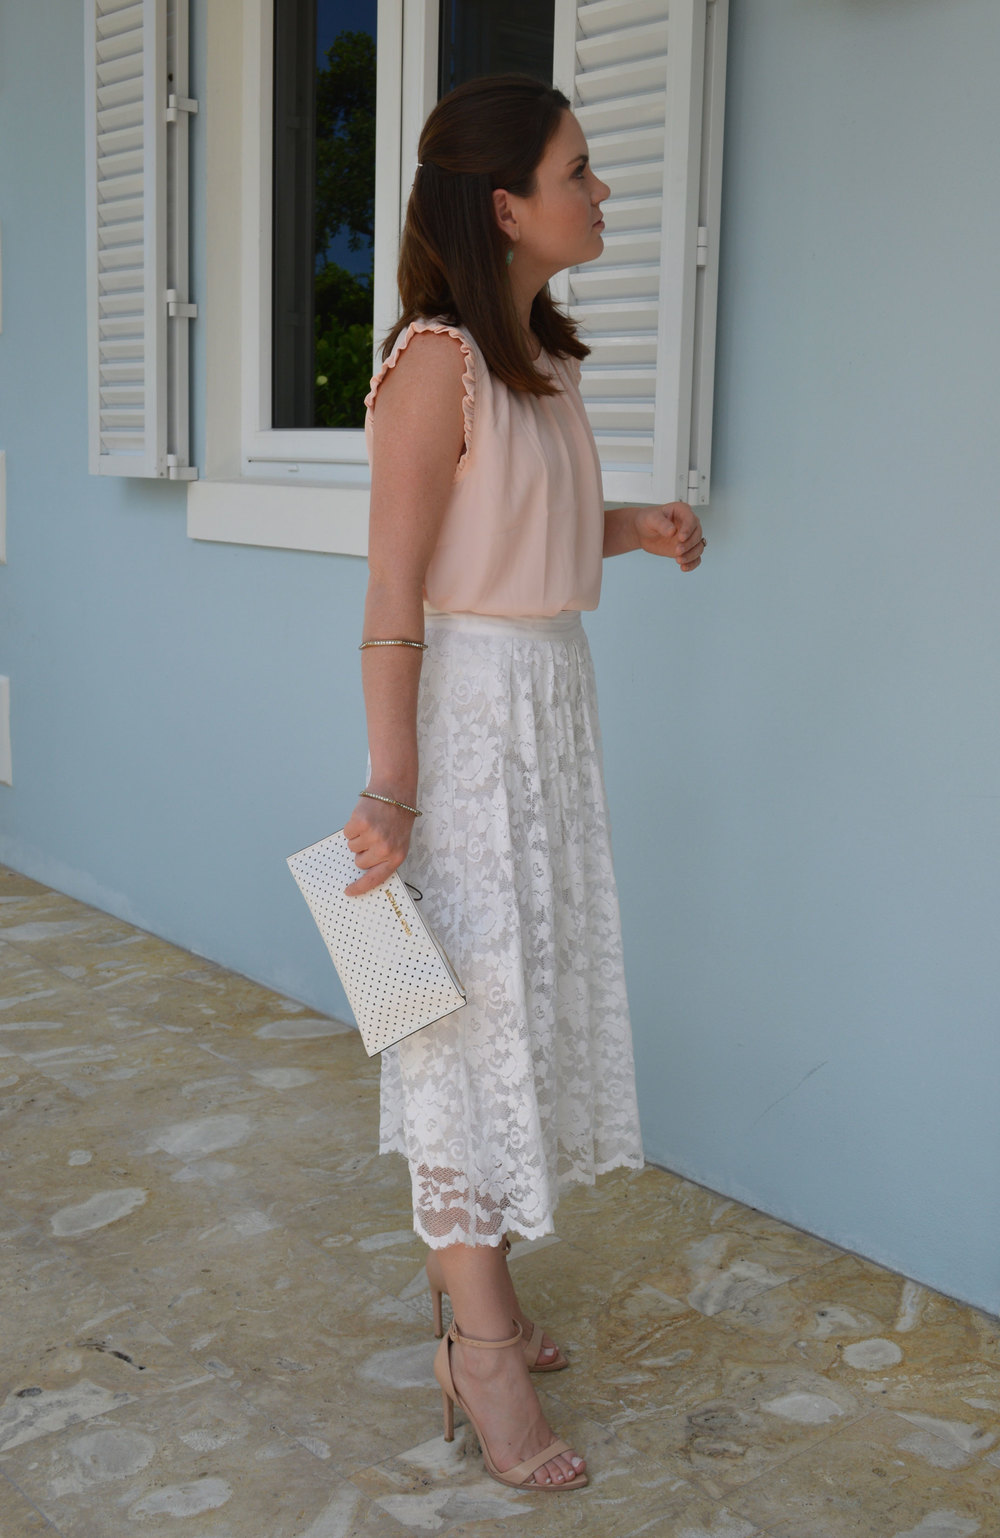 lady-lace-bauble-bar-drop-earrings-forever21-white-lace-pink-blouse-zara-nude-heels-style-blogger-nassau-bahamas.jpeg